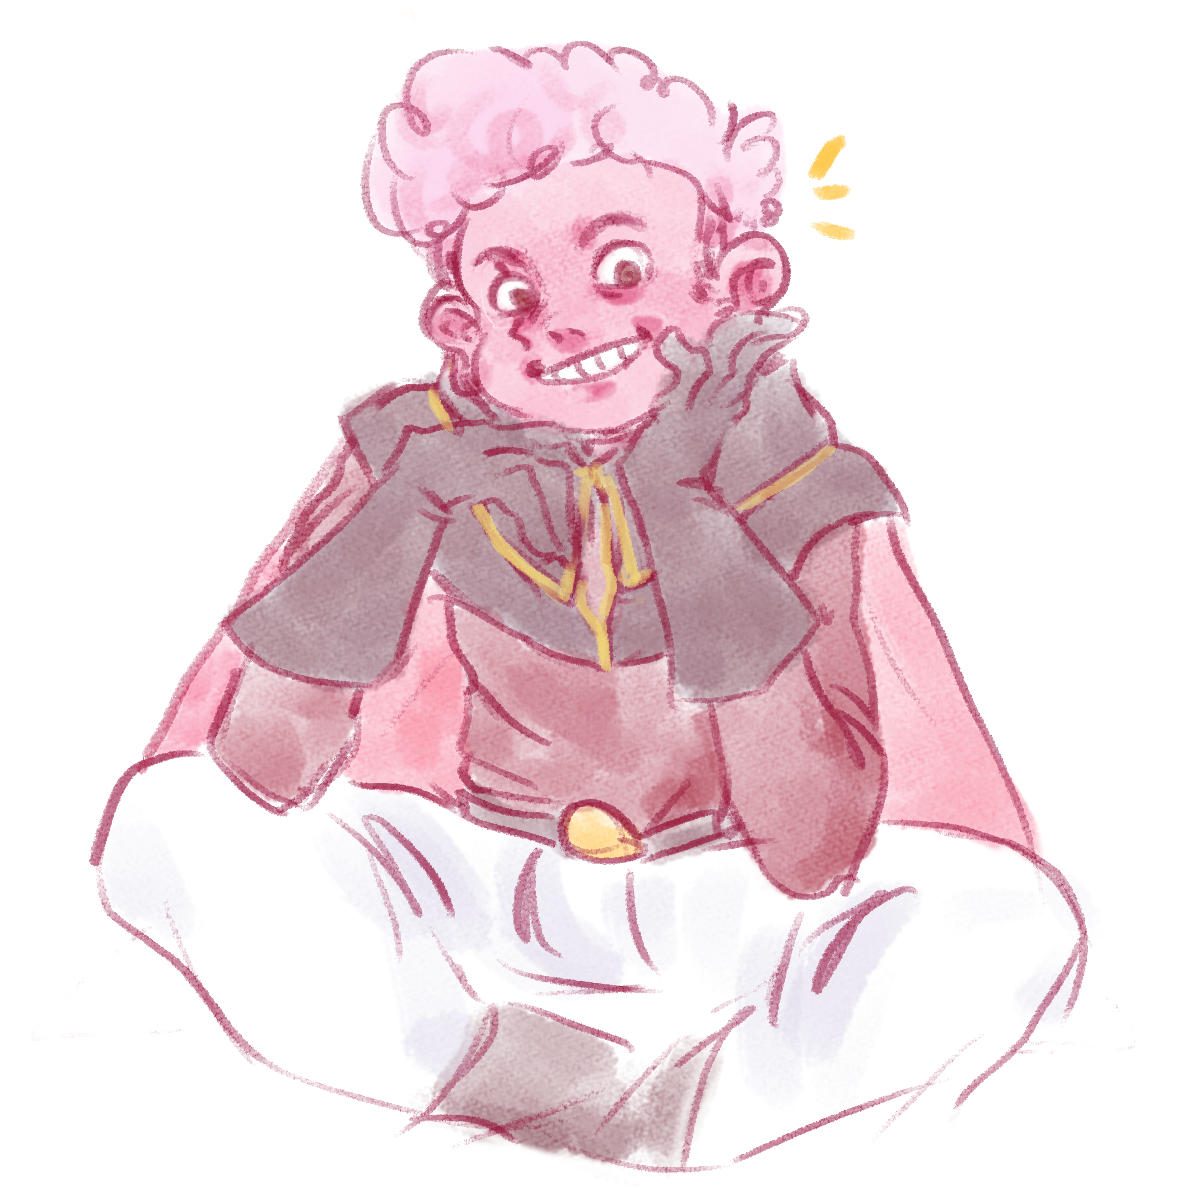 late to the party but i love captain lars ⭐️⭐️